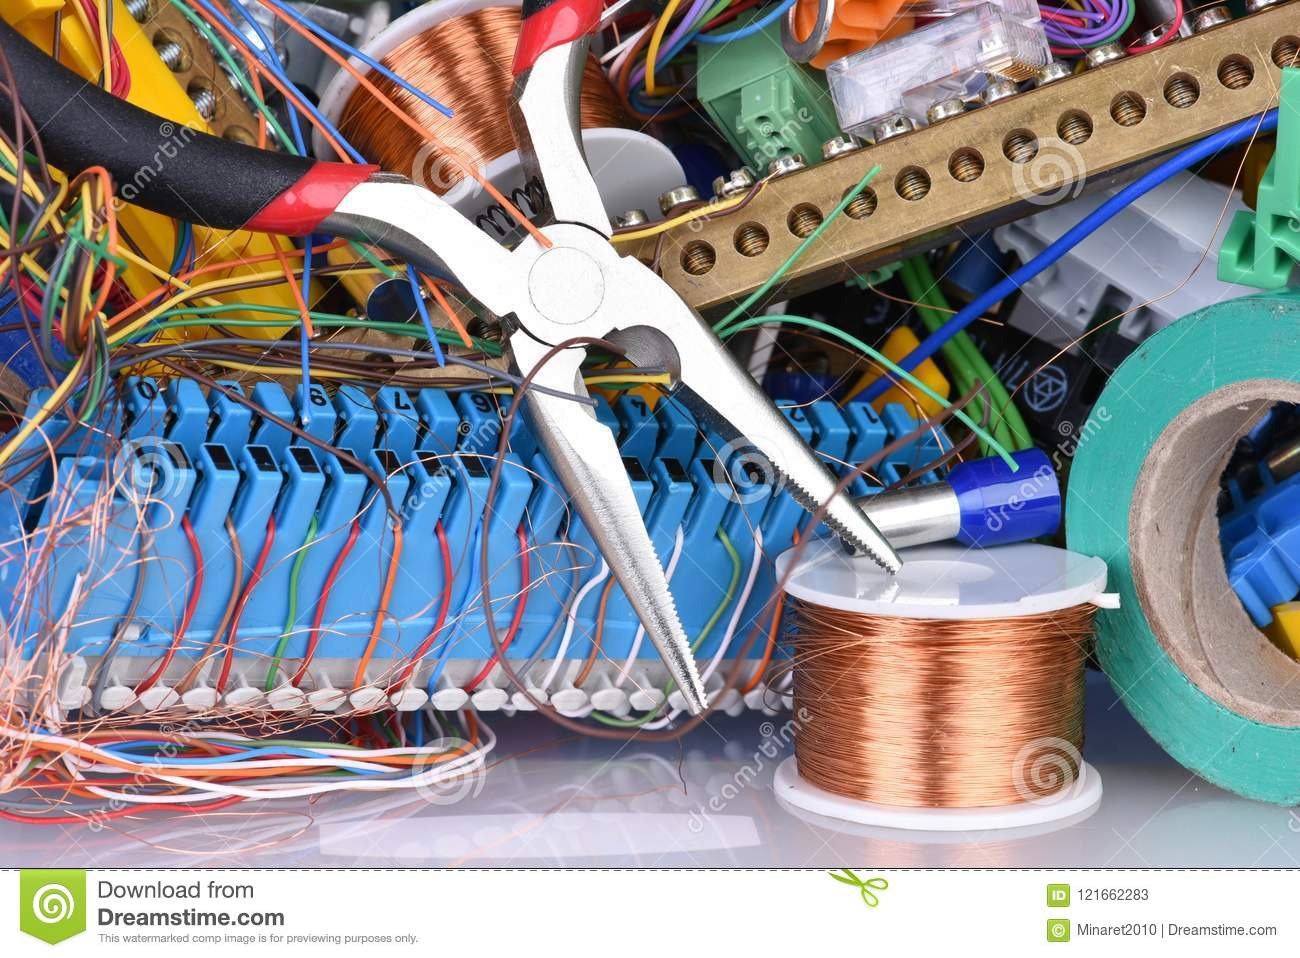 hight resolution of tools and cables used in electrical home installation